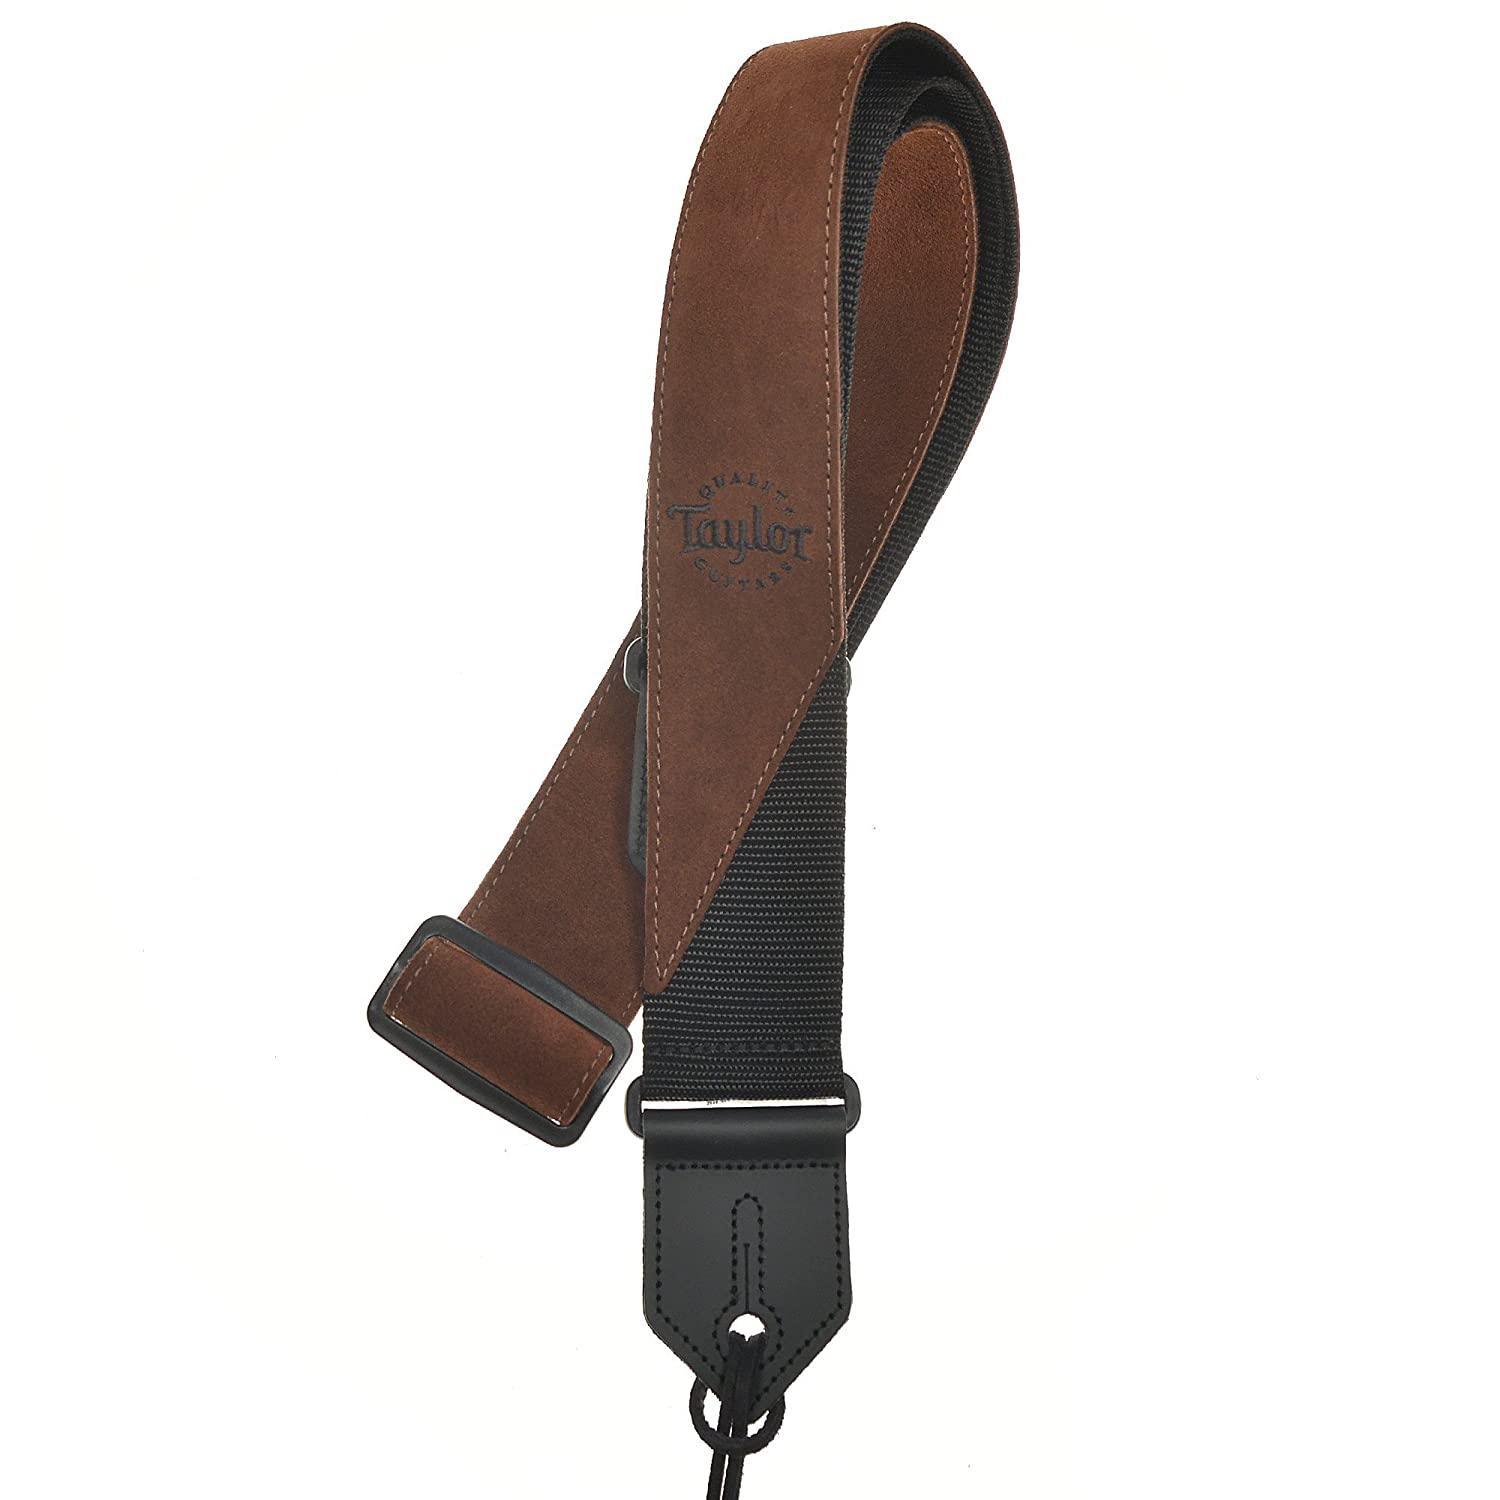 Taylor Guitar Strap - Suede/Poly, Brown Taylor Guitars 65123